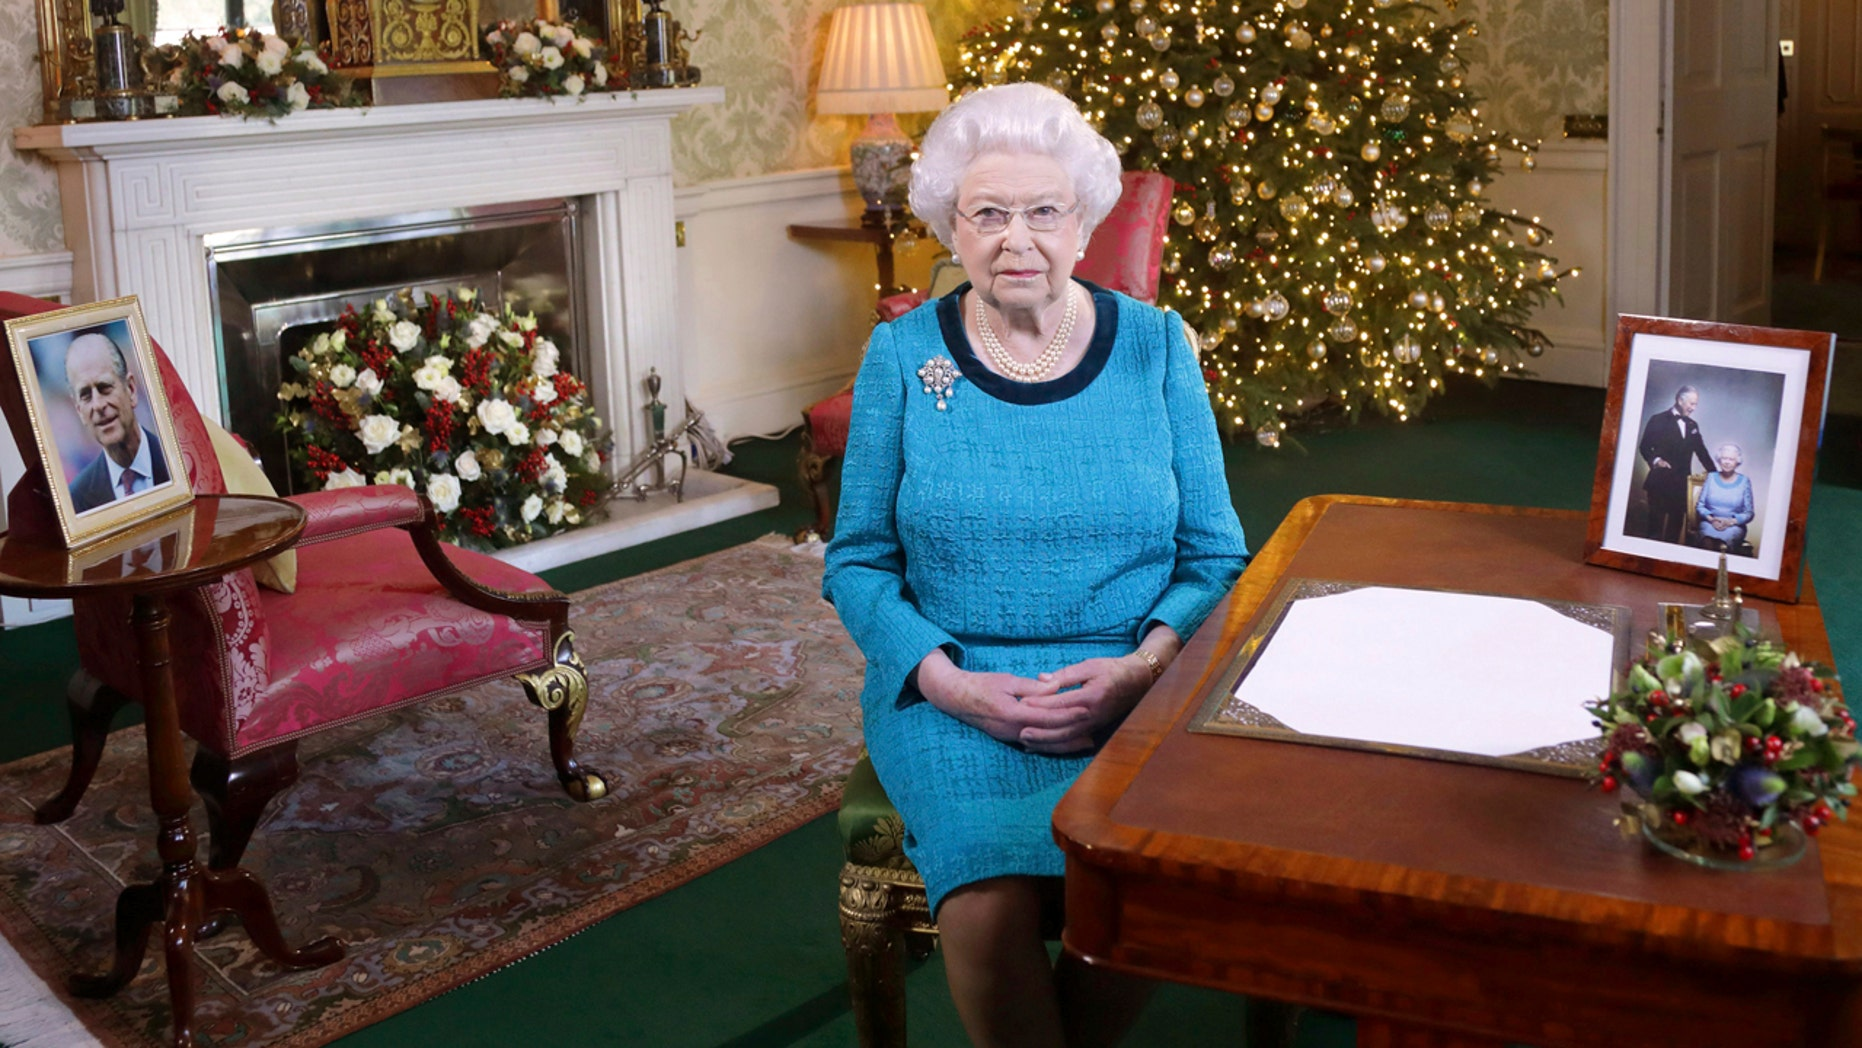 Dec. 25, 2016: Britain's Queen Elizabeth II poses for a photo while sitting at a desk in the Regency Room of Buckingham Palace in London, after recording her traditional Christmas Day broadcast to the Commonwealth.